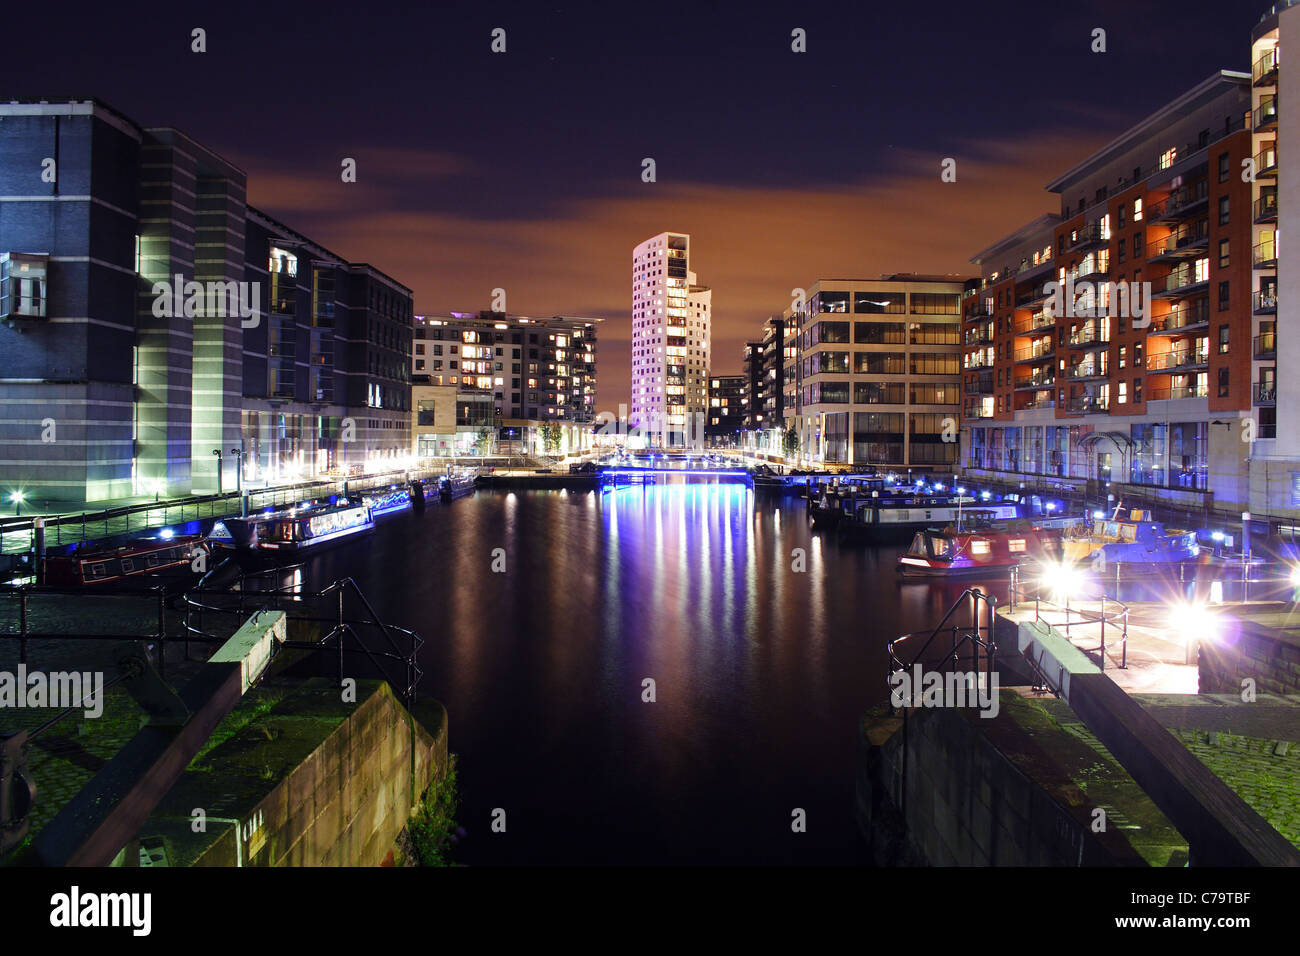 Clarence Dock in Leeds at night - Stock Image